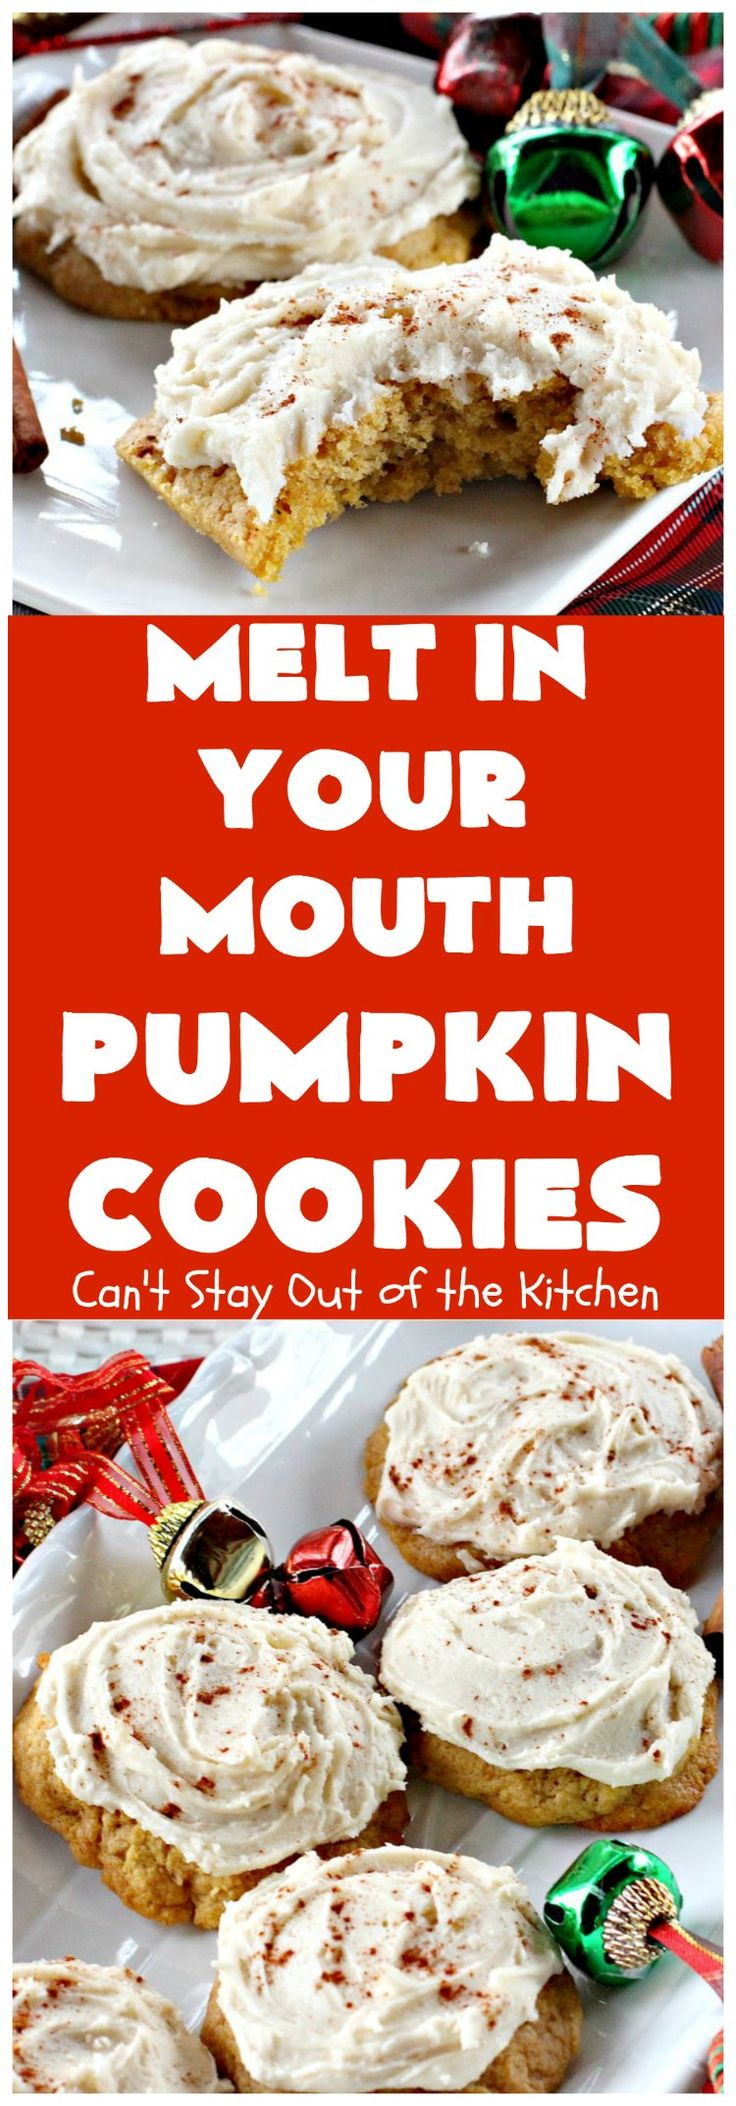 Melt in Your Mouth Pumpkin Cookies | Can't Stay Out of the Kitchen | these are the most awesome #pumpkin #cookies ever! The brown sugar buttercream frosting is amazing. These are terrific for #Christmas baking & parties. #dessert